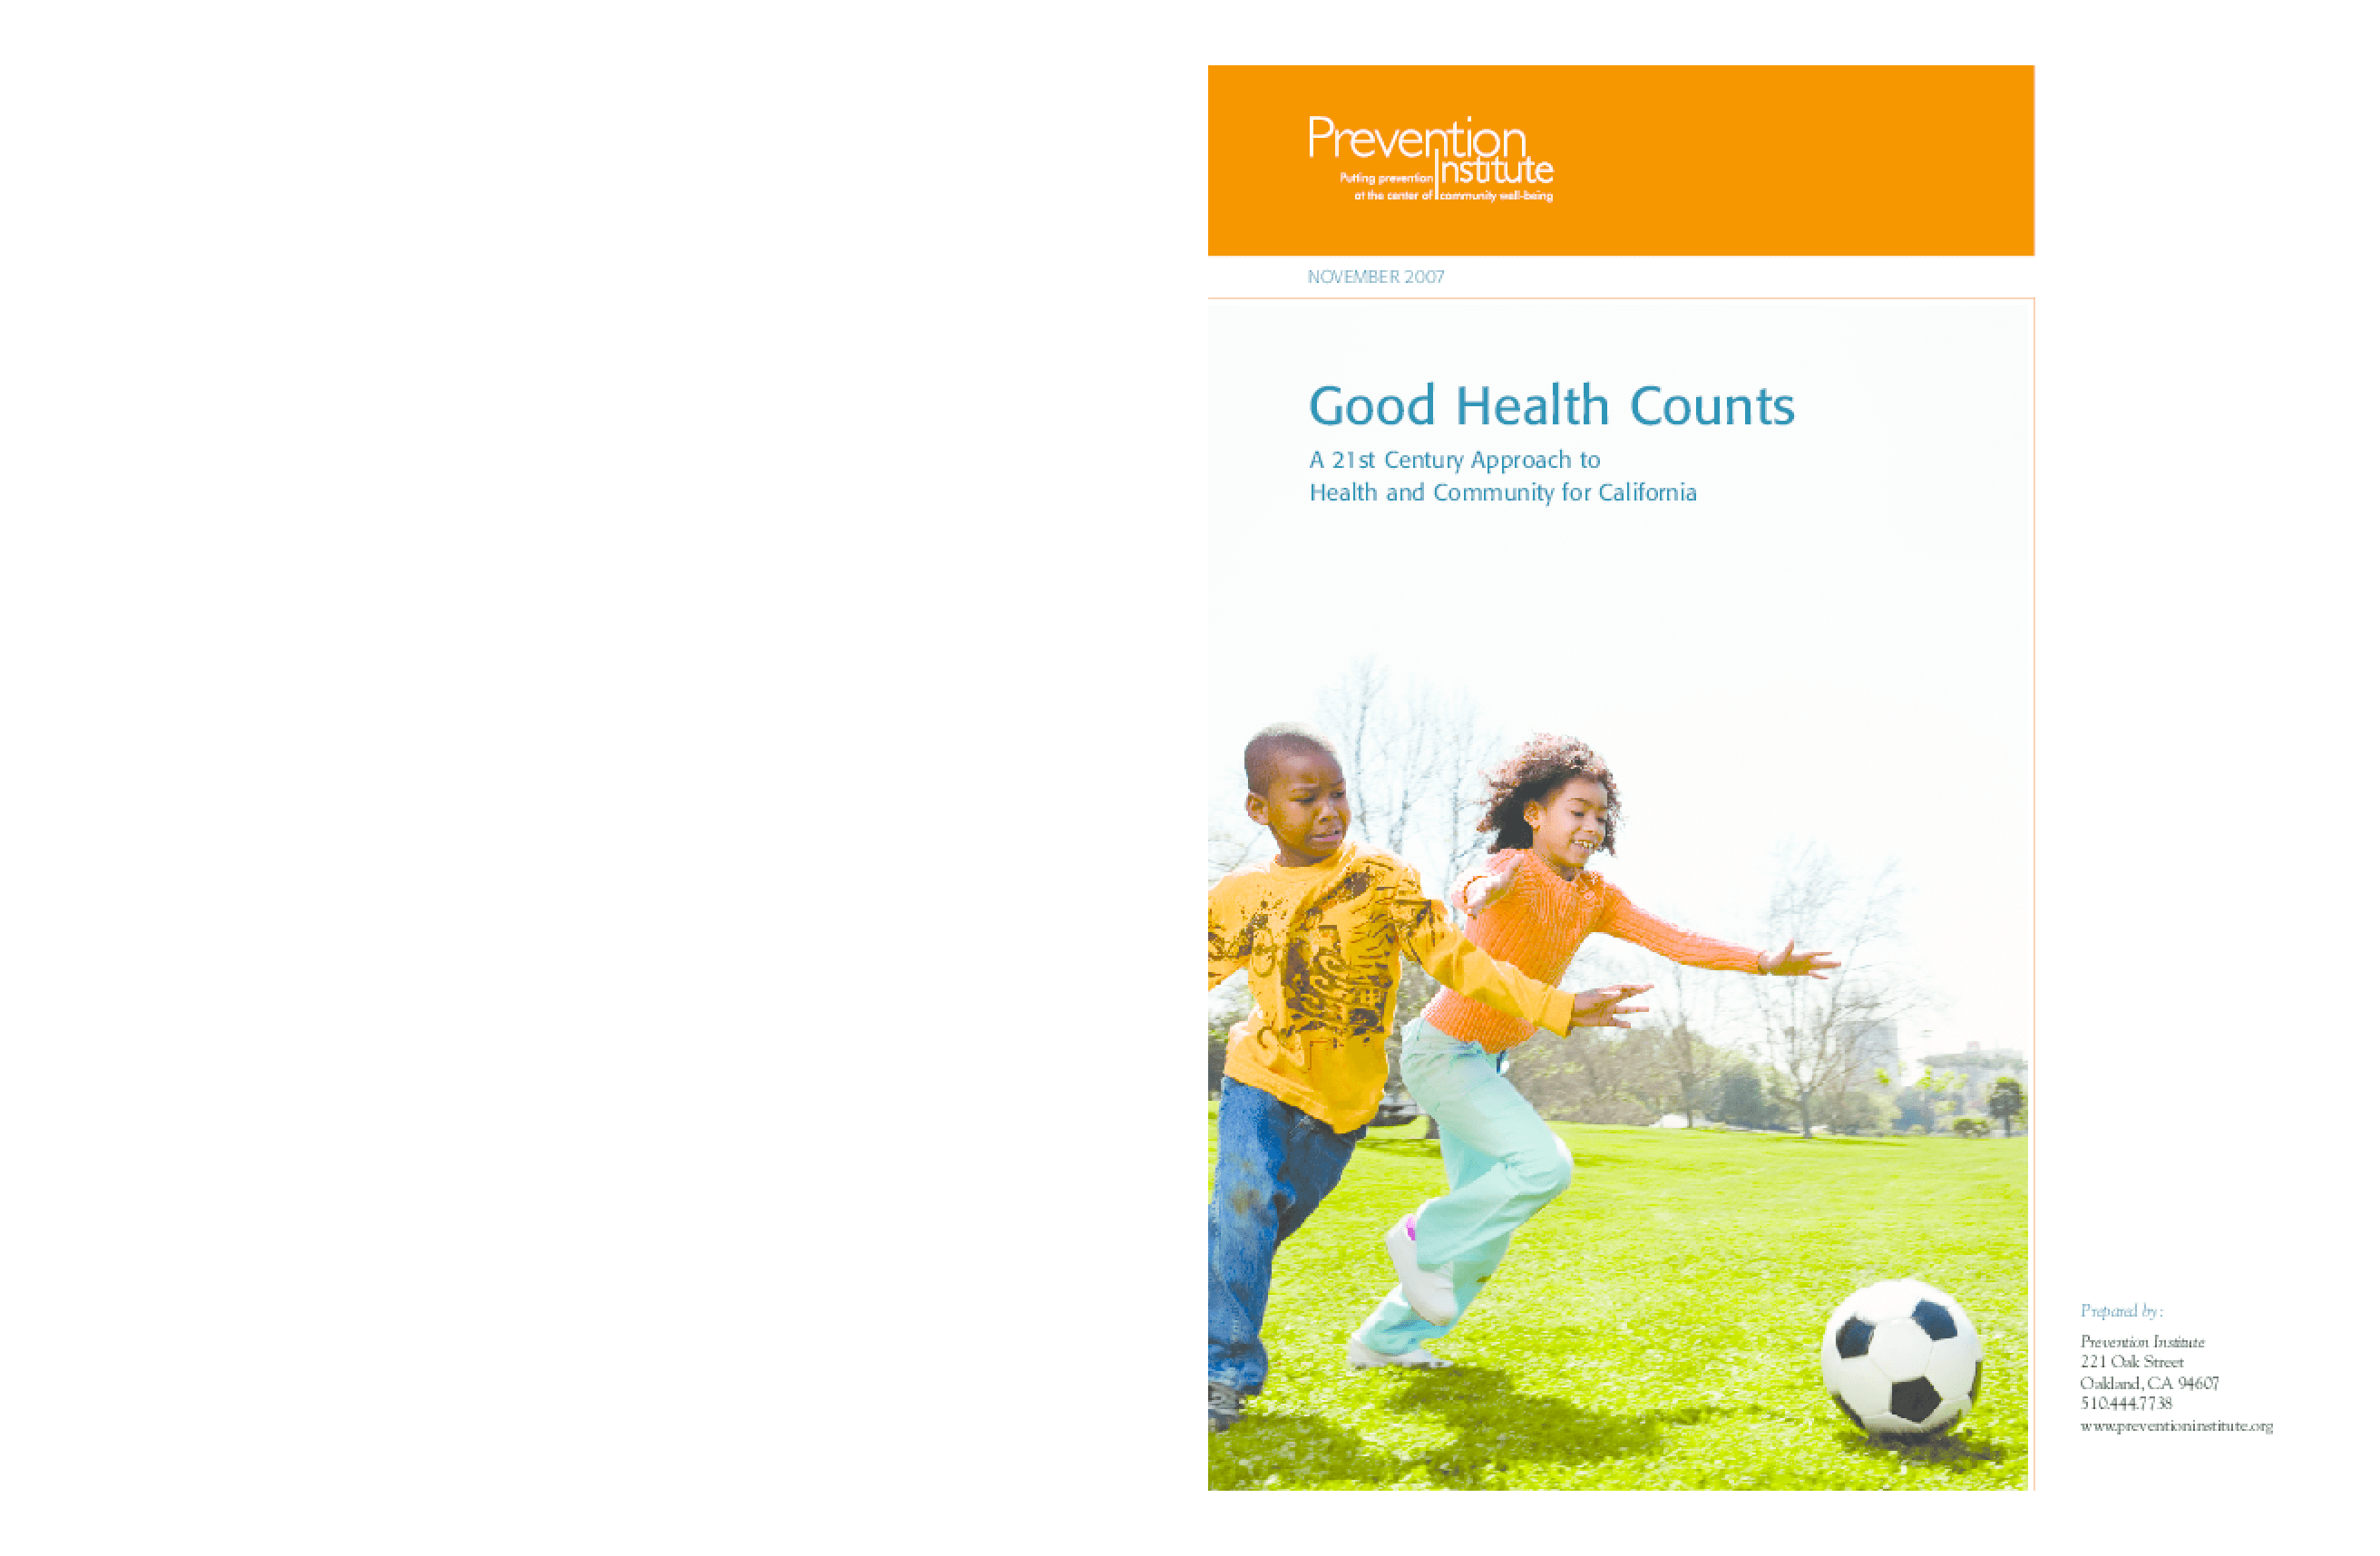 Good Health Counts: A 21st Century Approach to Health and Community for California